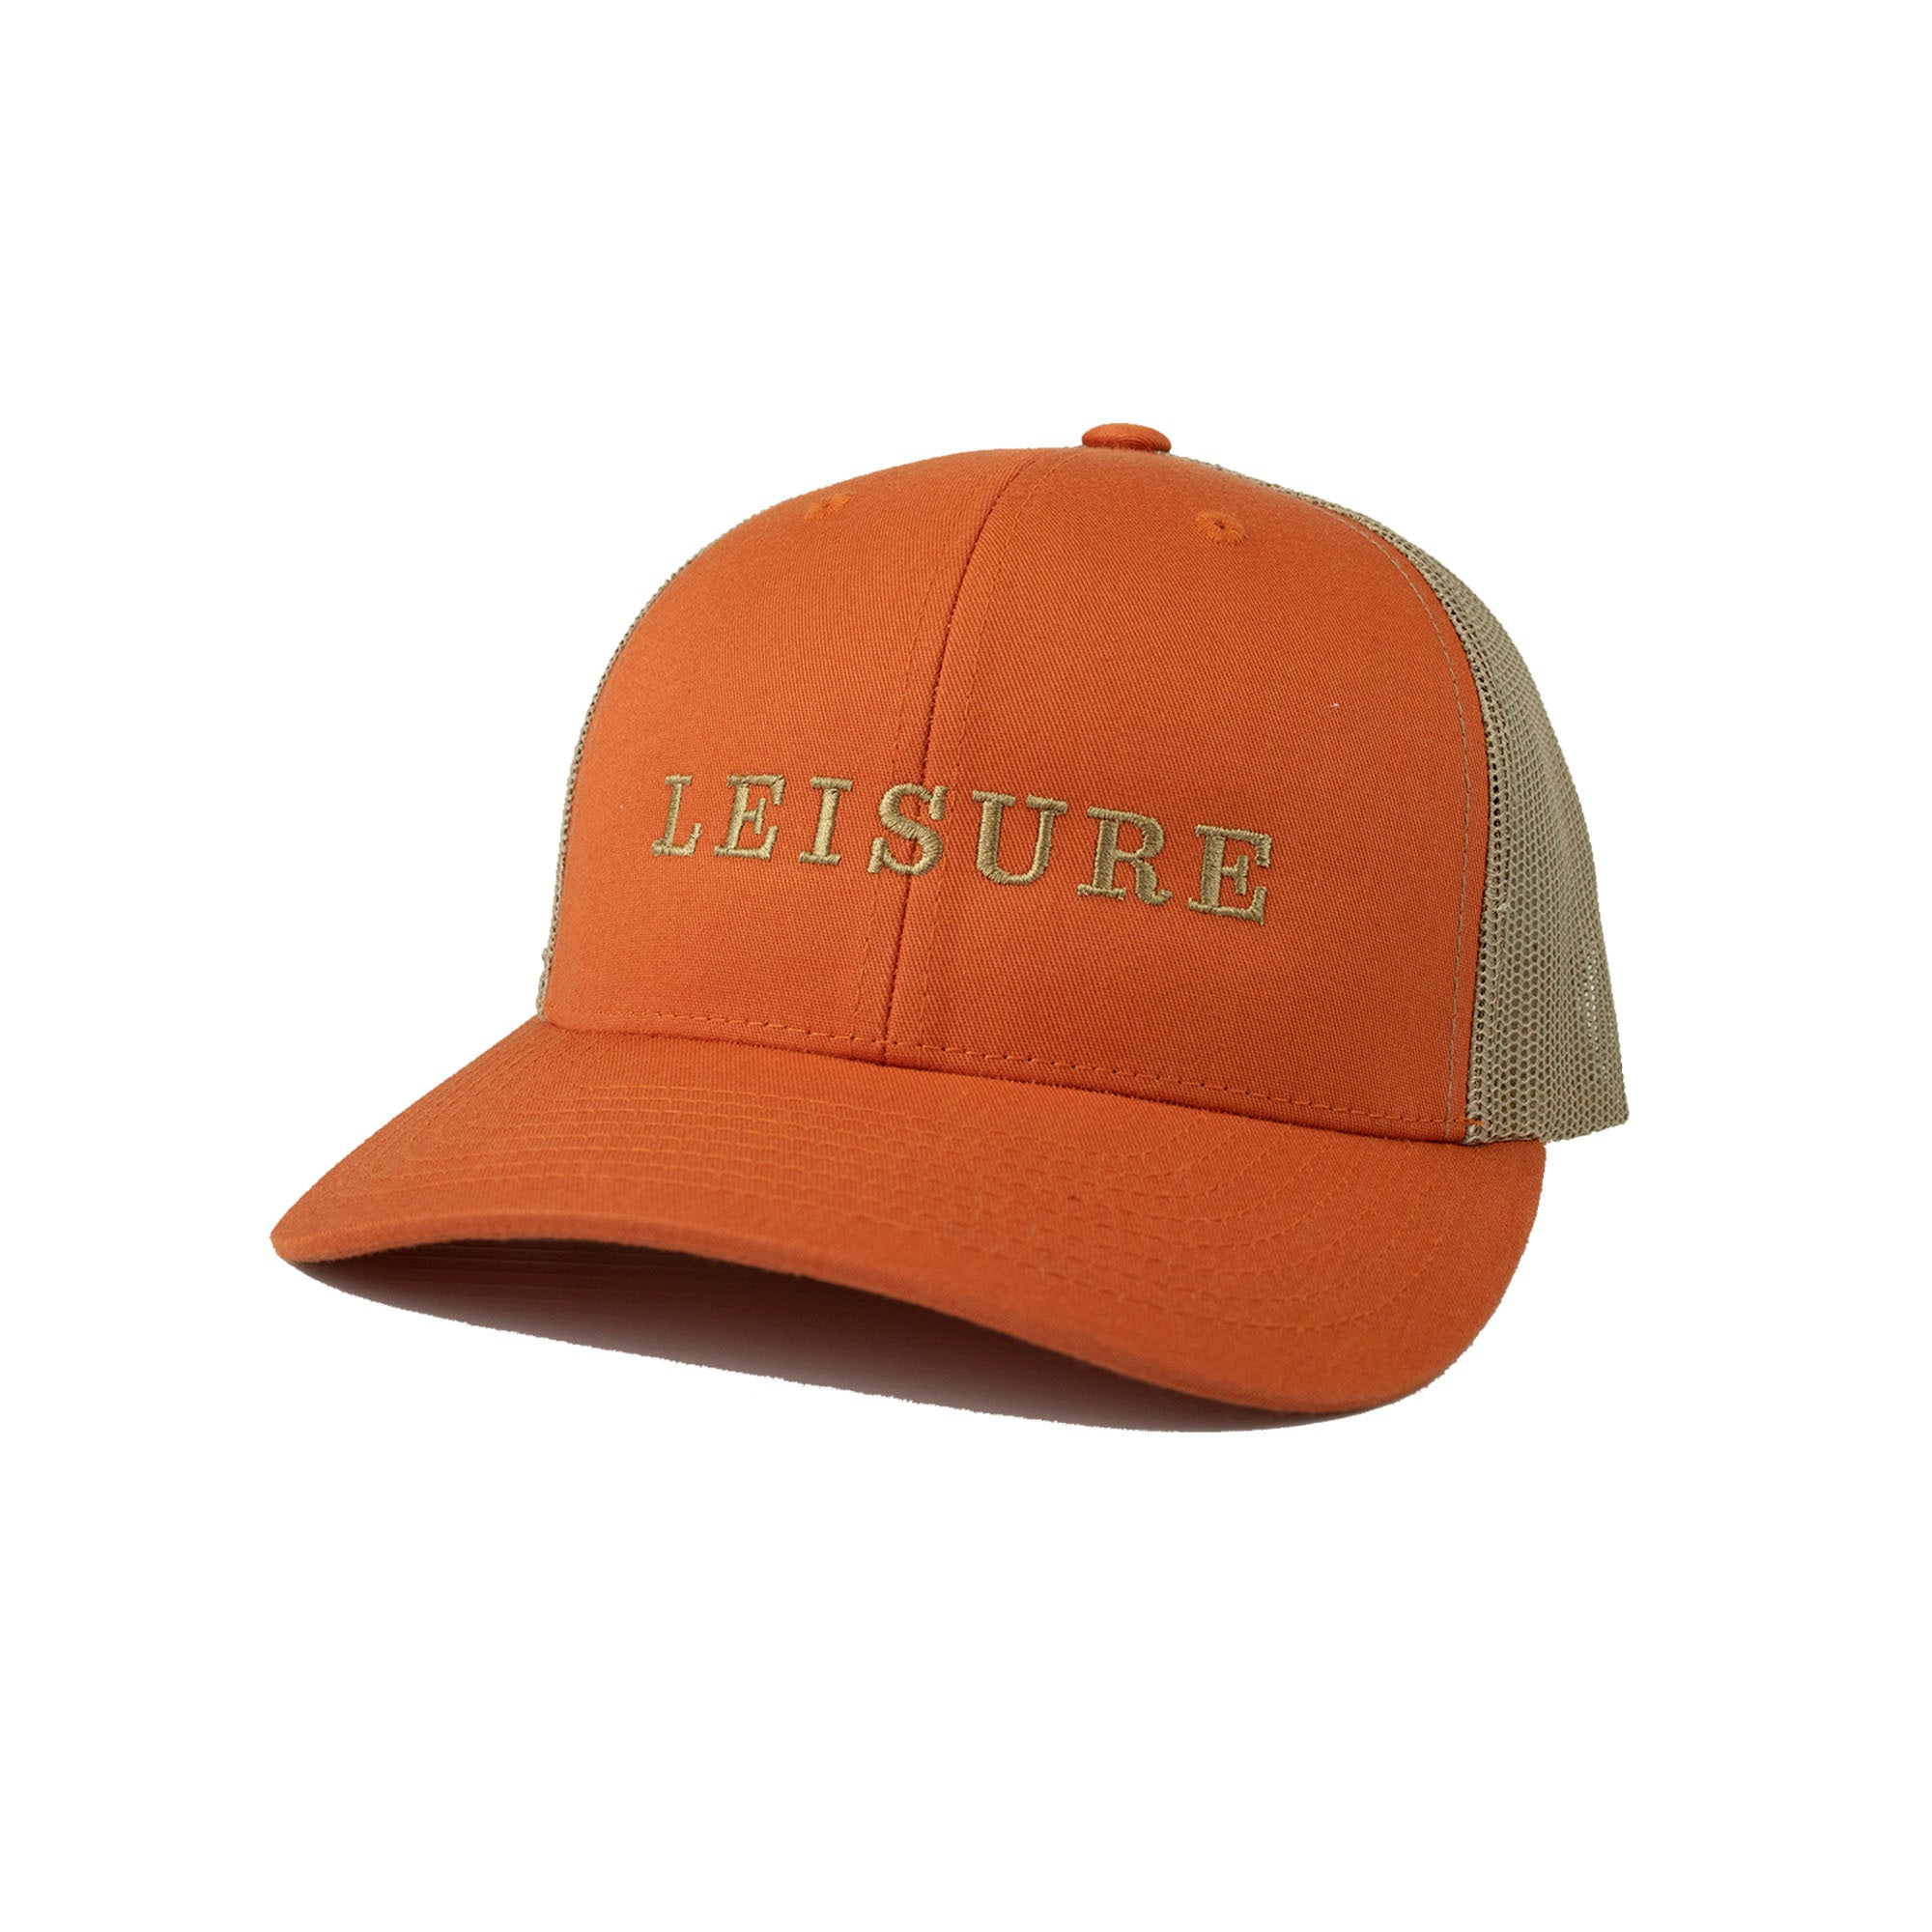 Retro Trucker Leisure Snapback